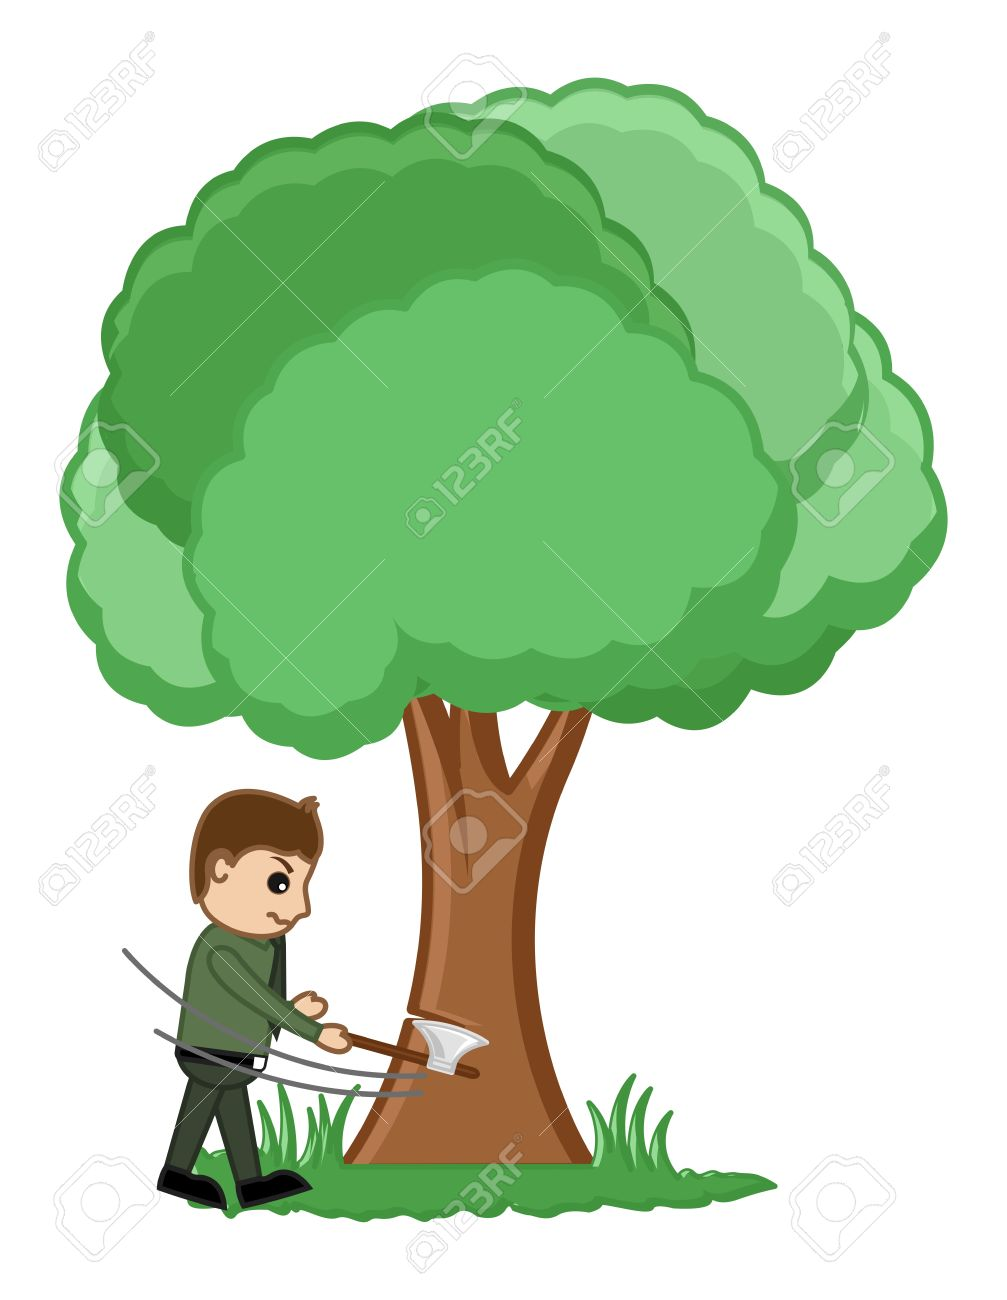 Man Cutting Tree Illustration Royalty Free Cliparts, Vectors, And.